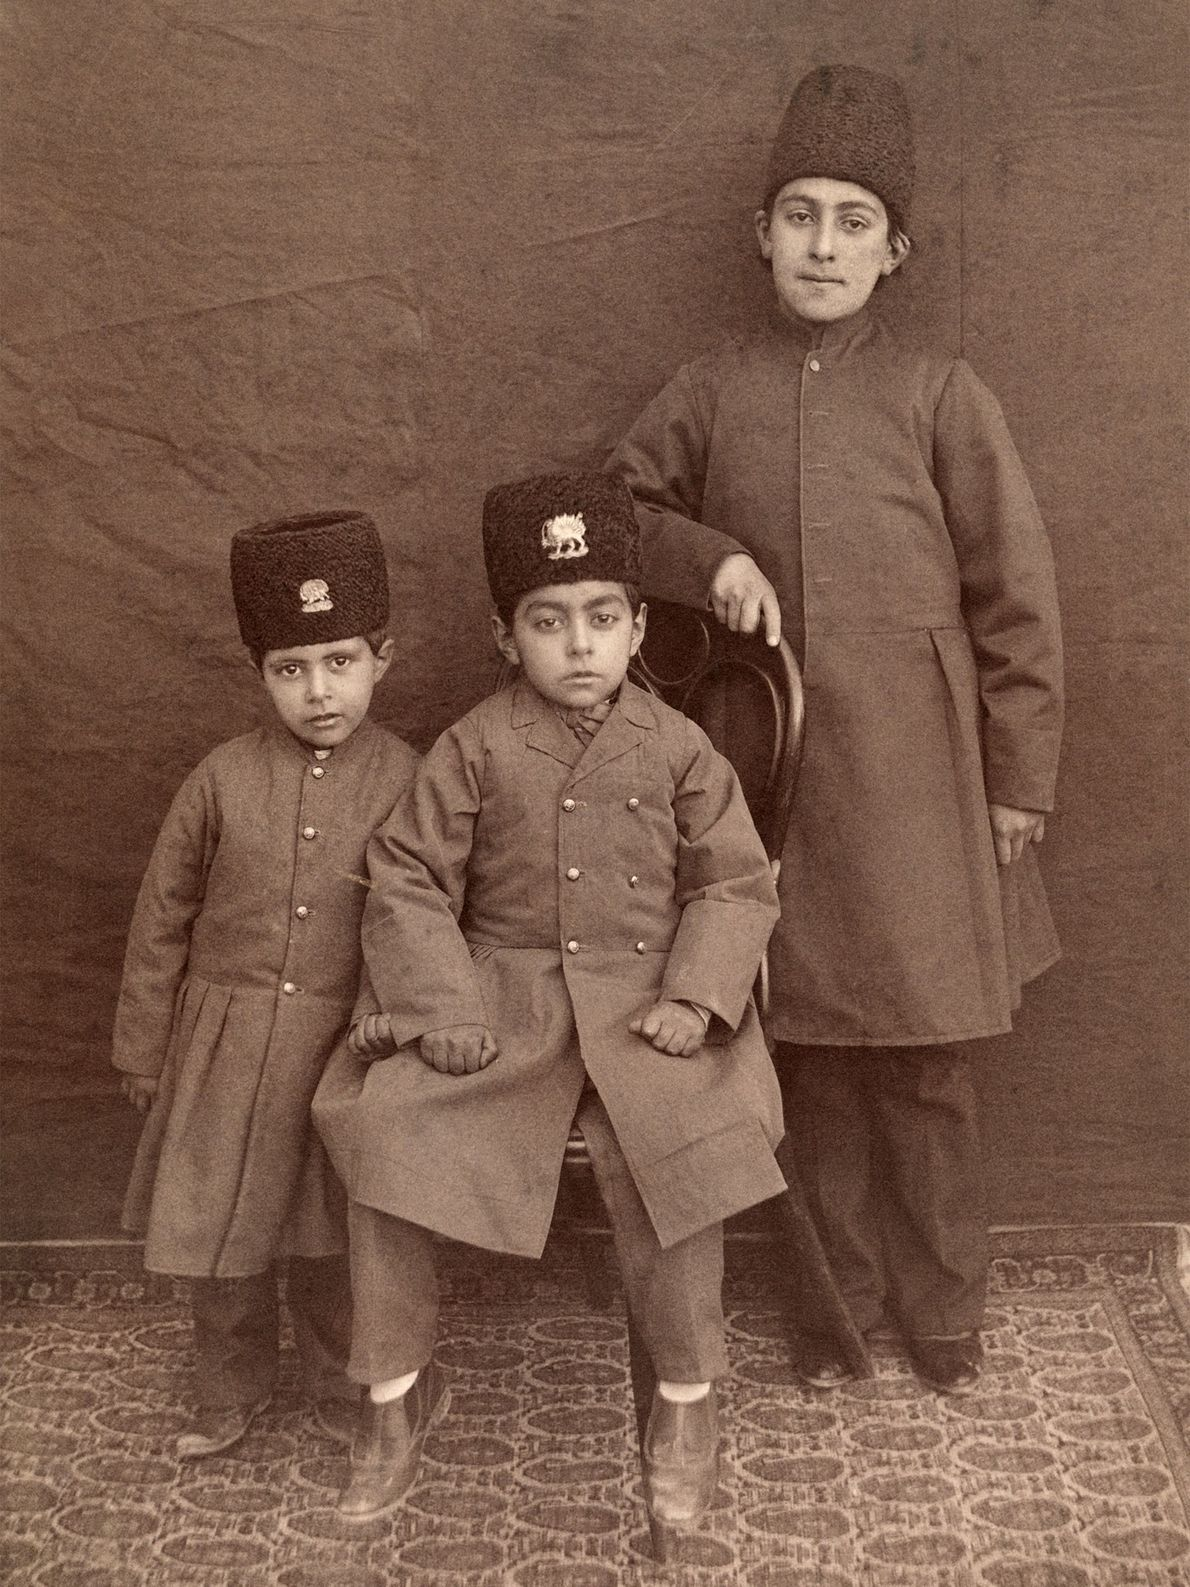 Three Persian boys pose for a portrait in their traditional clothing and hats.